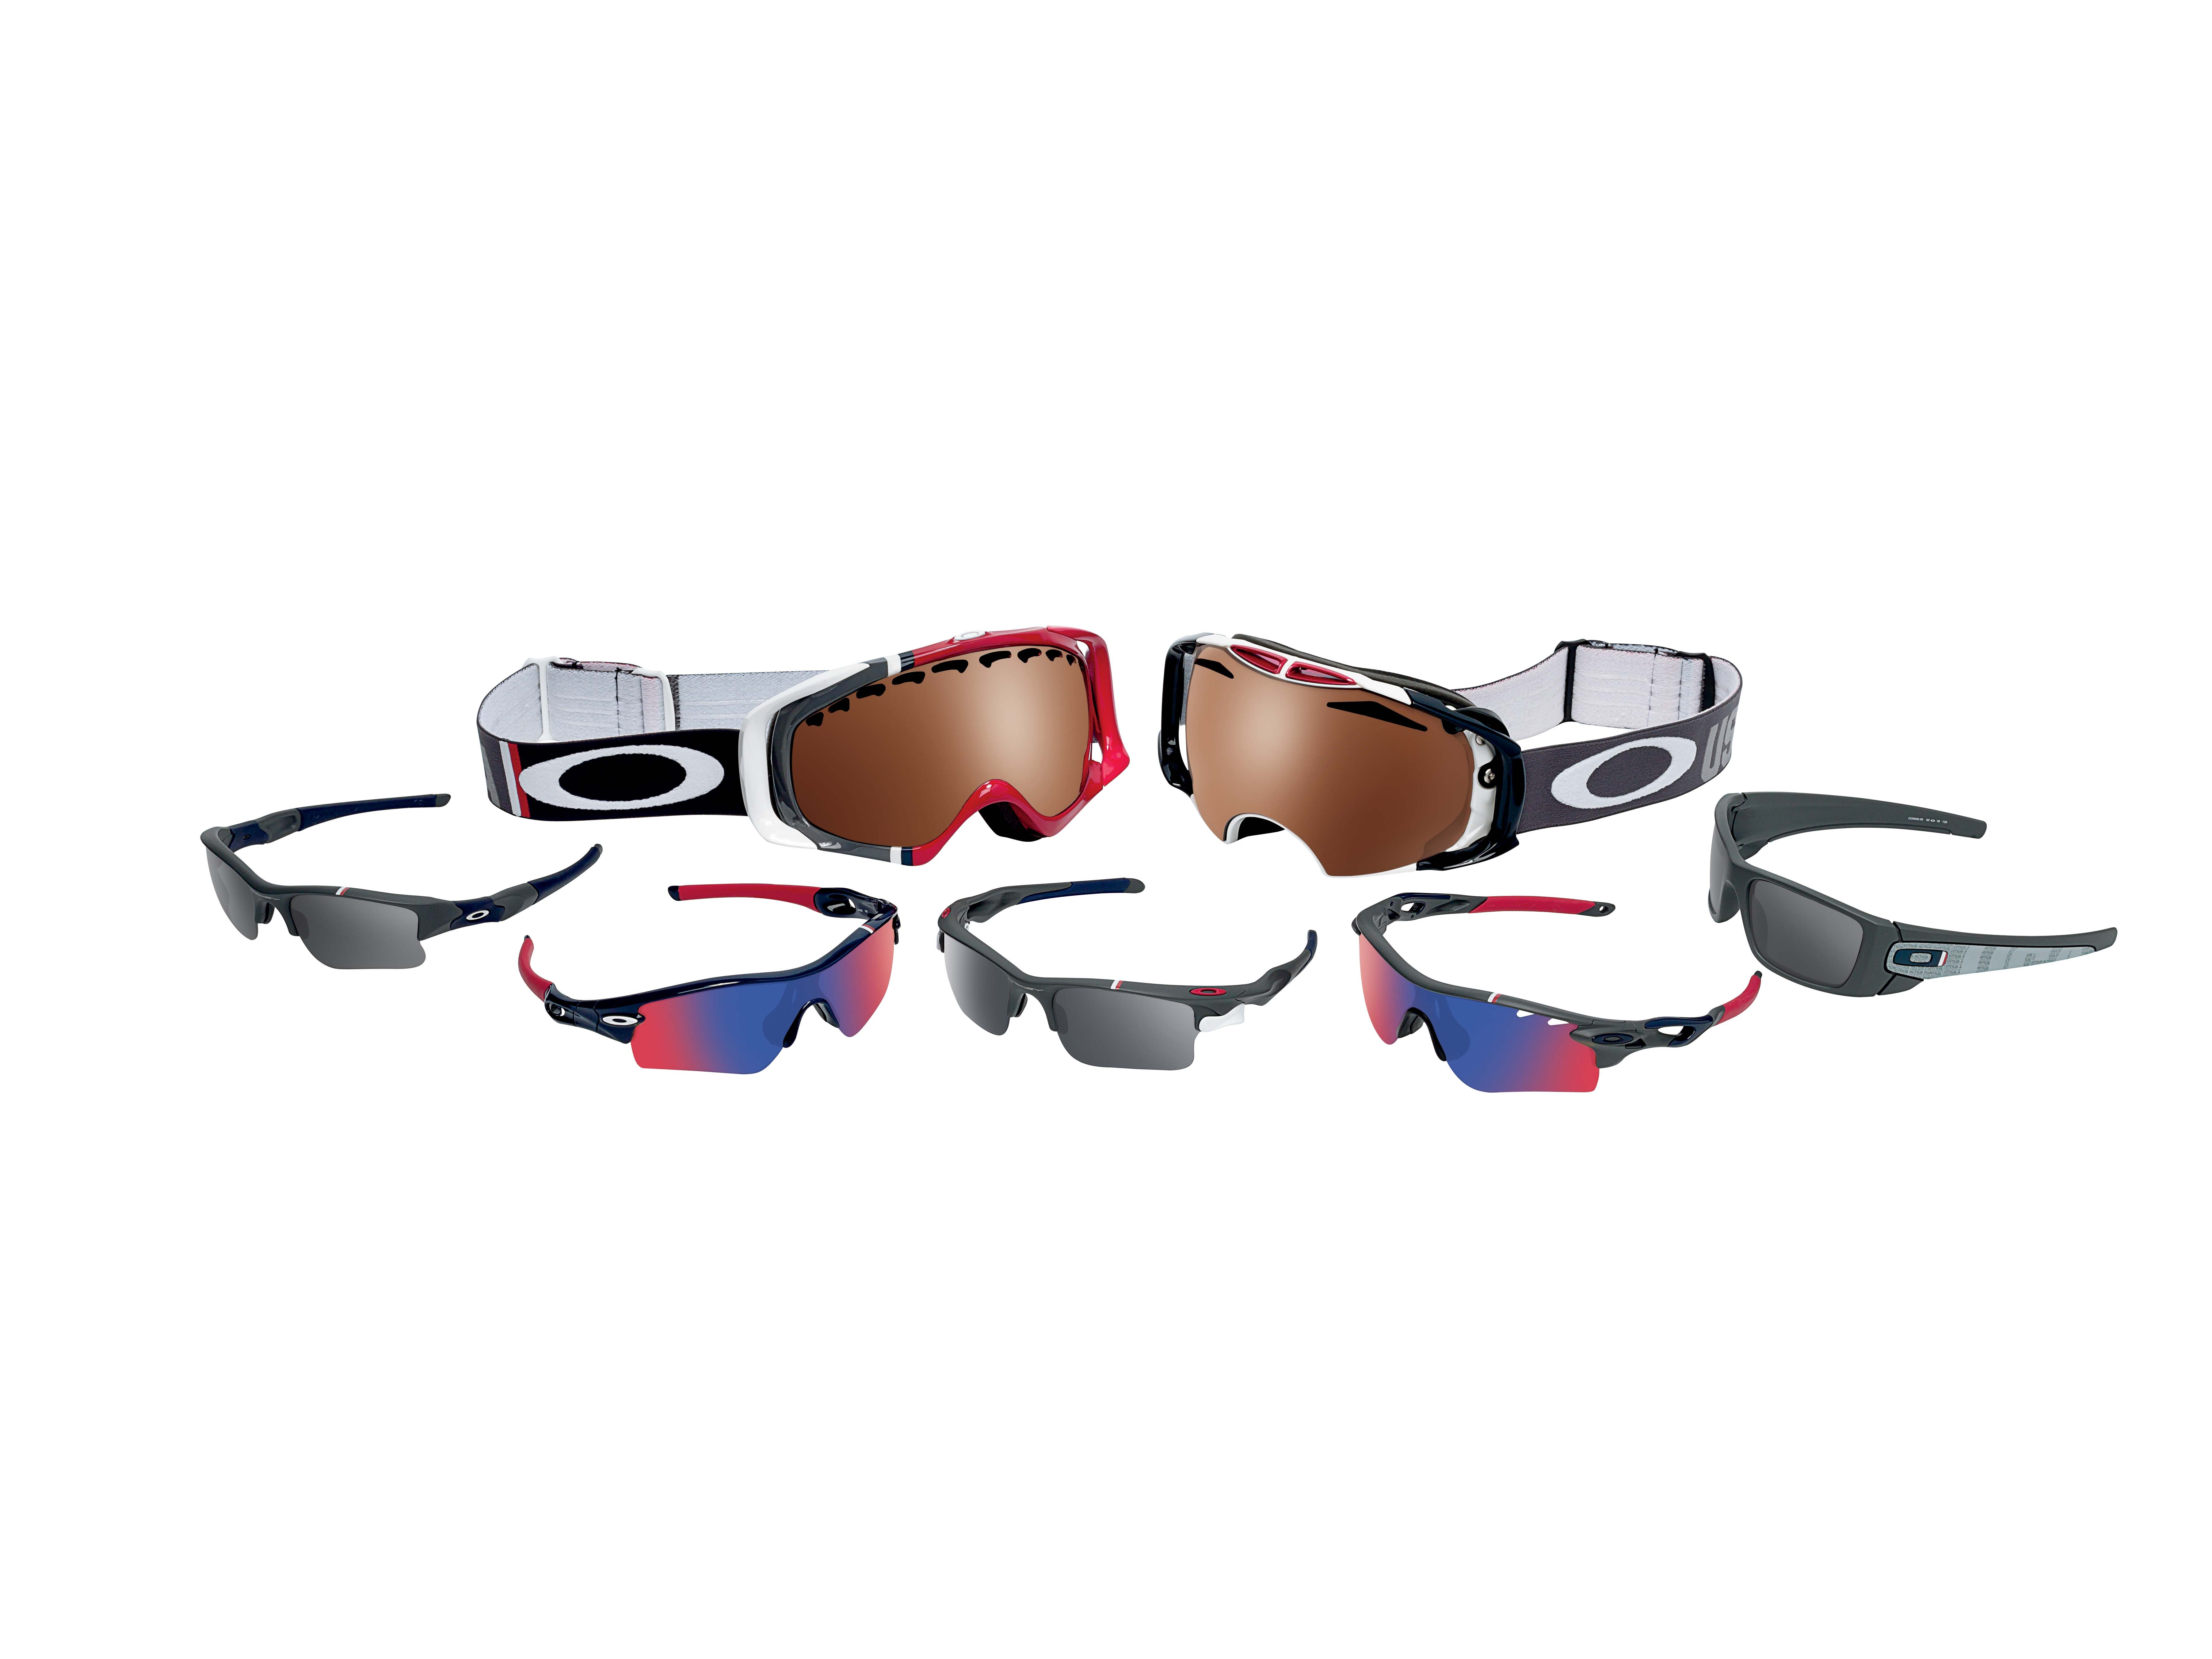 oakley sunglasses us  u.s. olympic committee and oakley expand team usa? collection